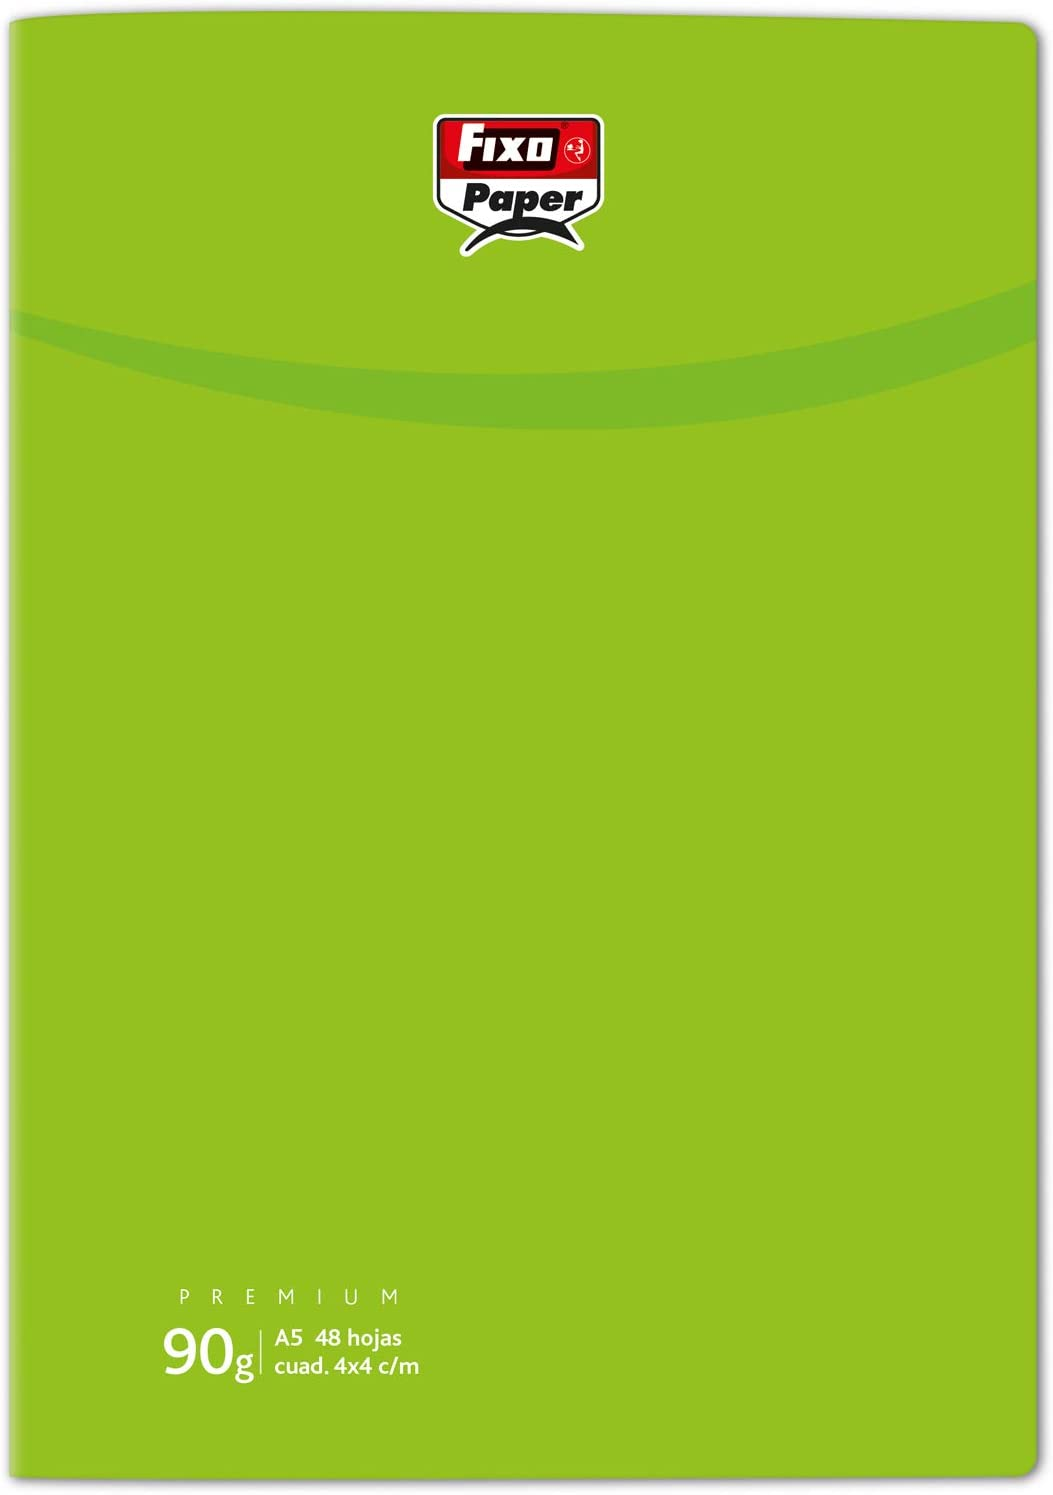 Fixo 98853721 Notebook with Staples, 4 mm Squared, 90 g, Light Green, A5